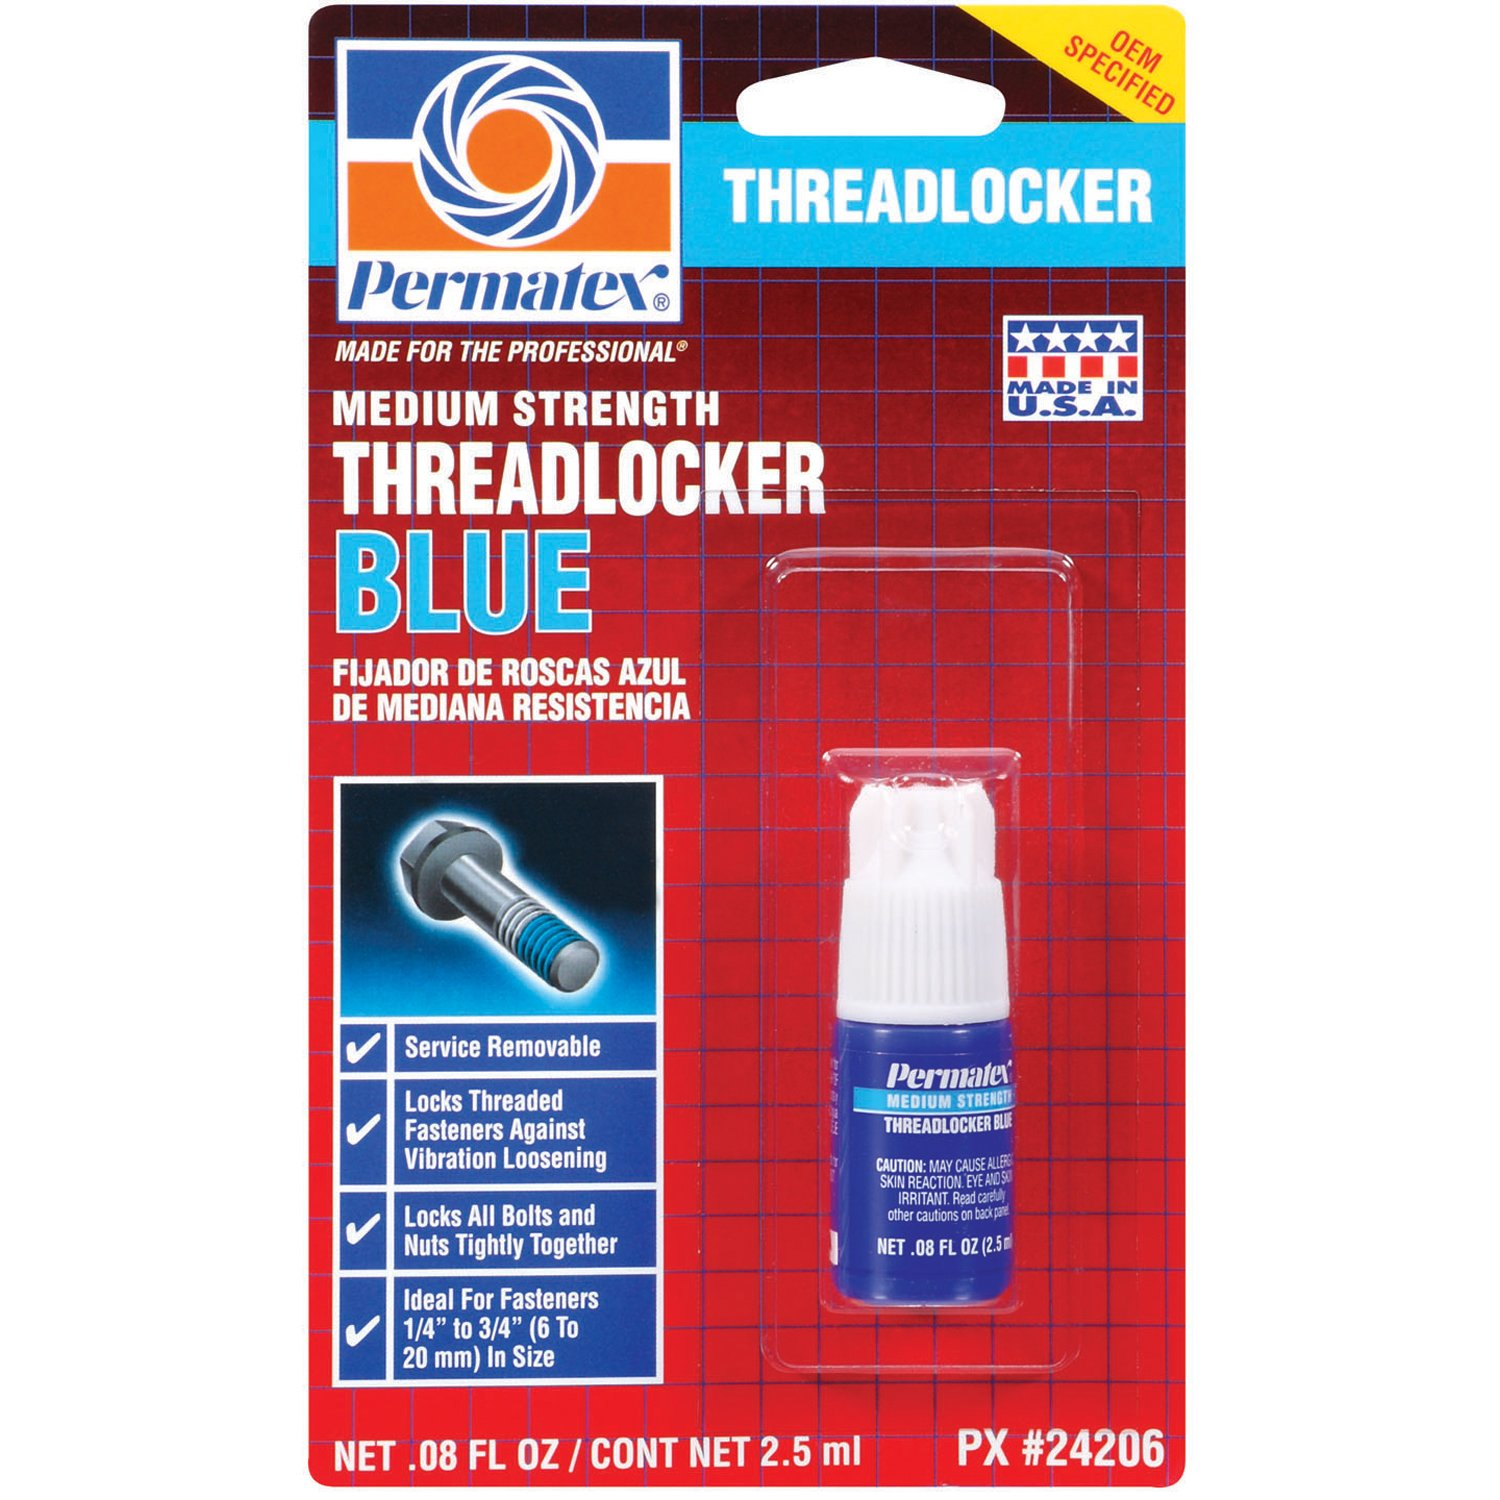 Permatex 24206 Medium Strength Threadlocker Blue, 2.5 ml product image